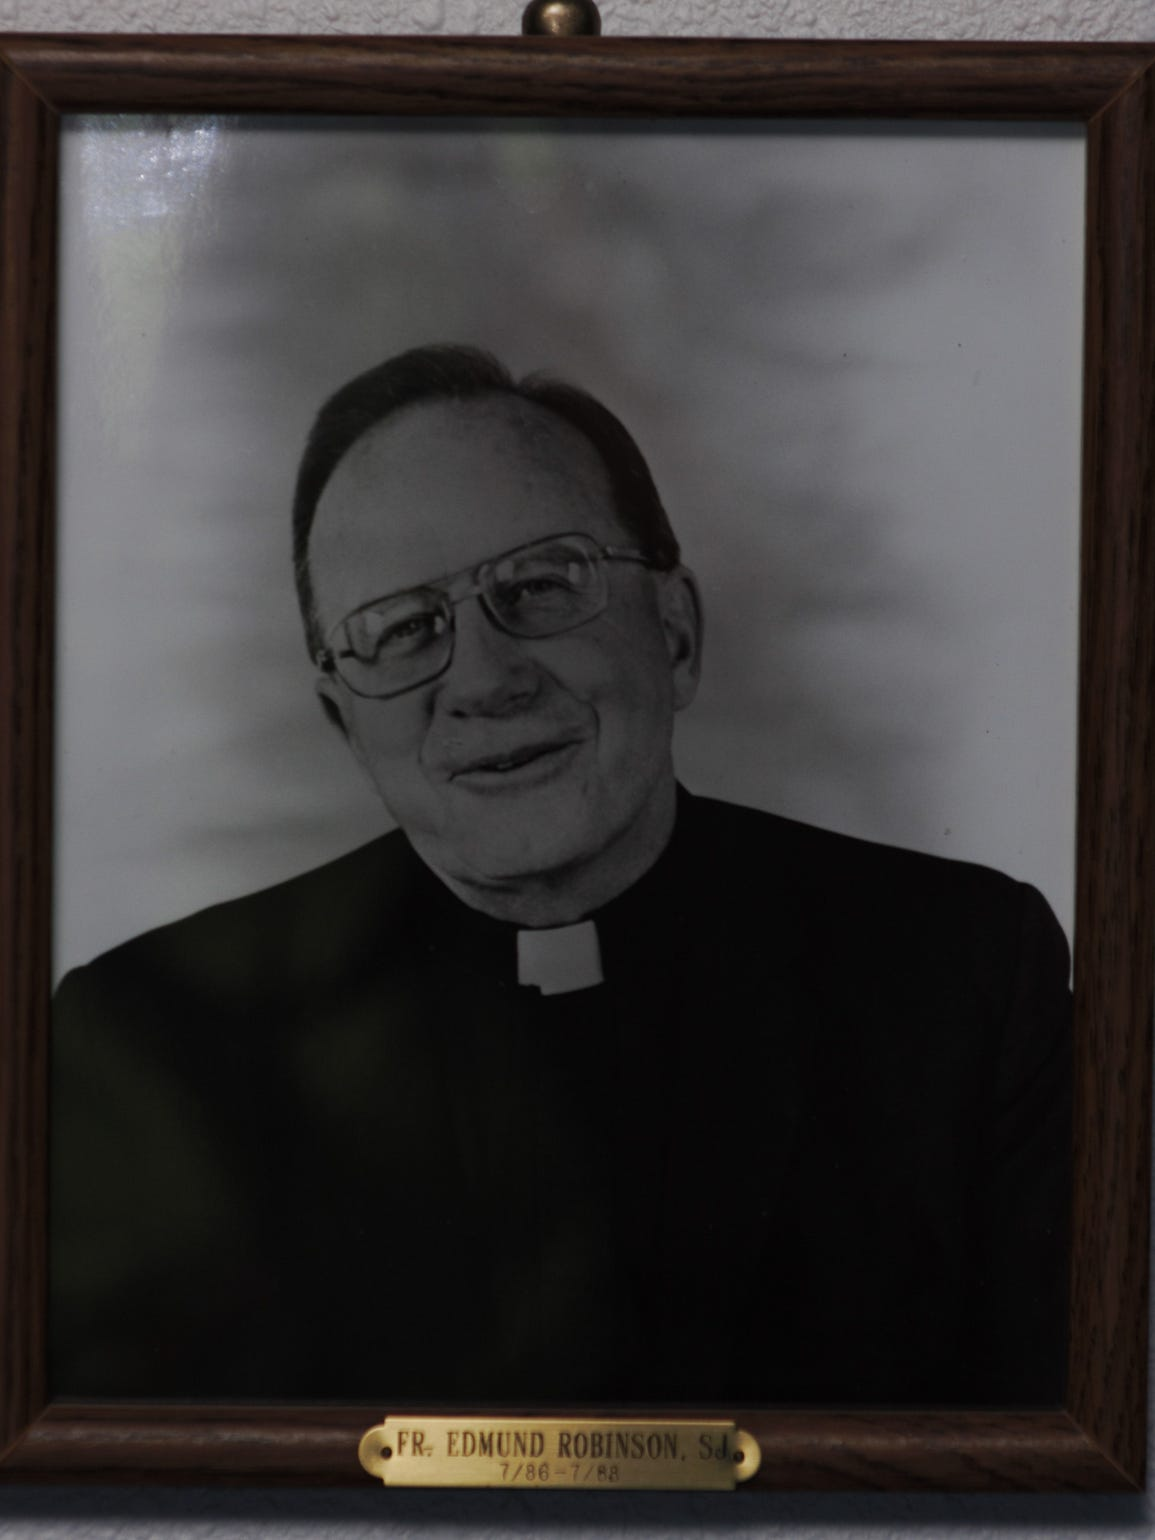 Father Edmund Robinson's portrait adorns a basement